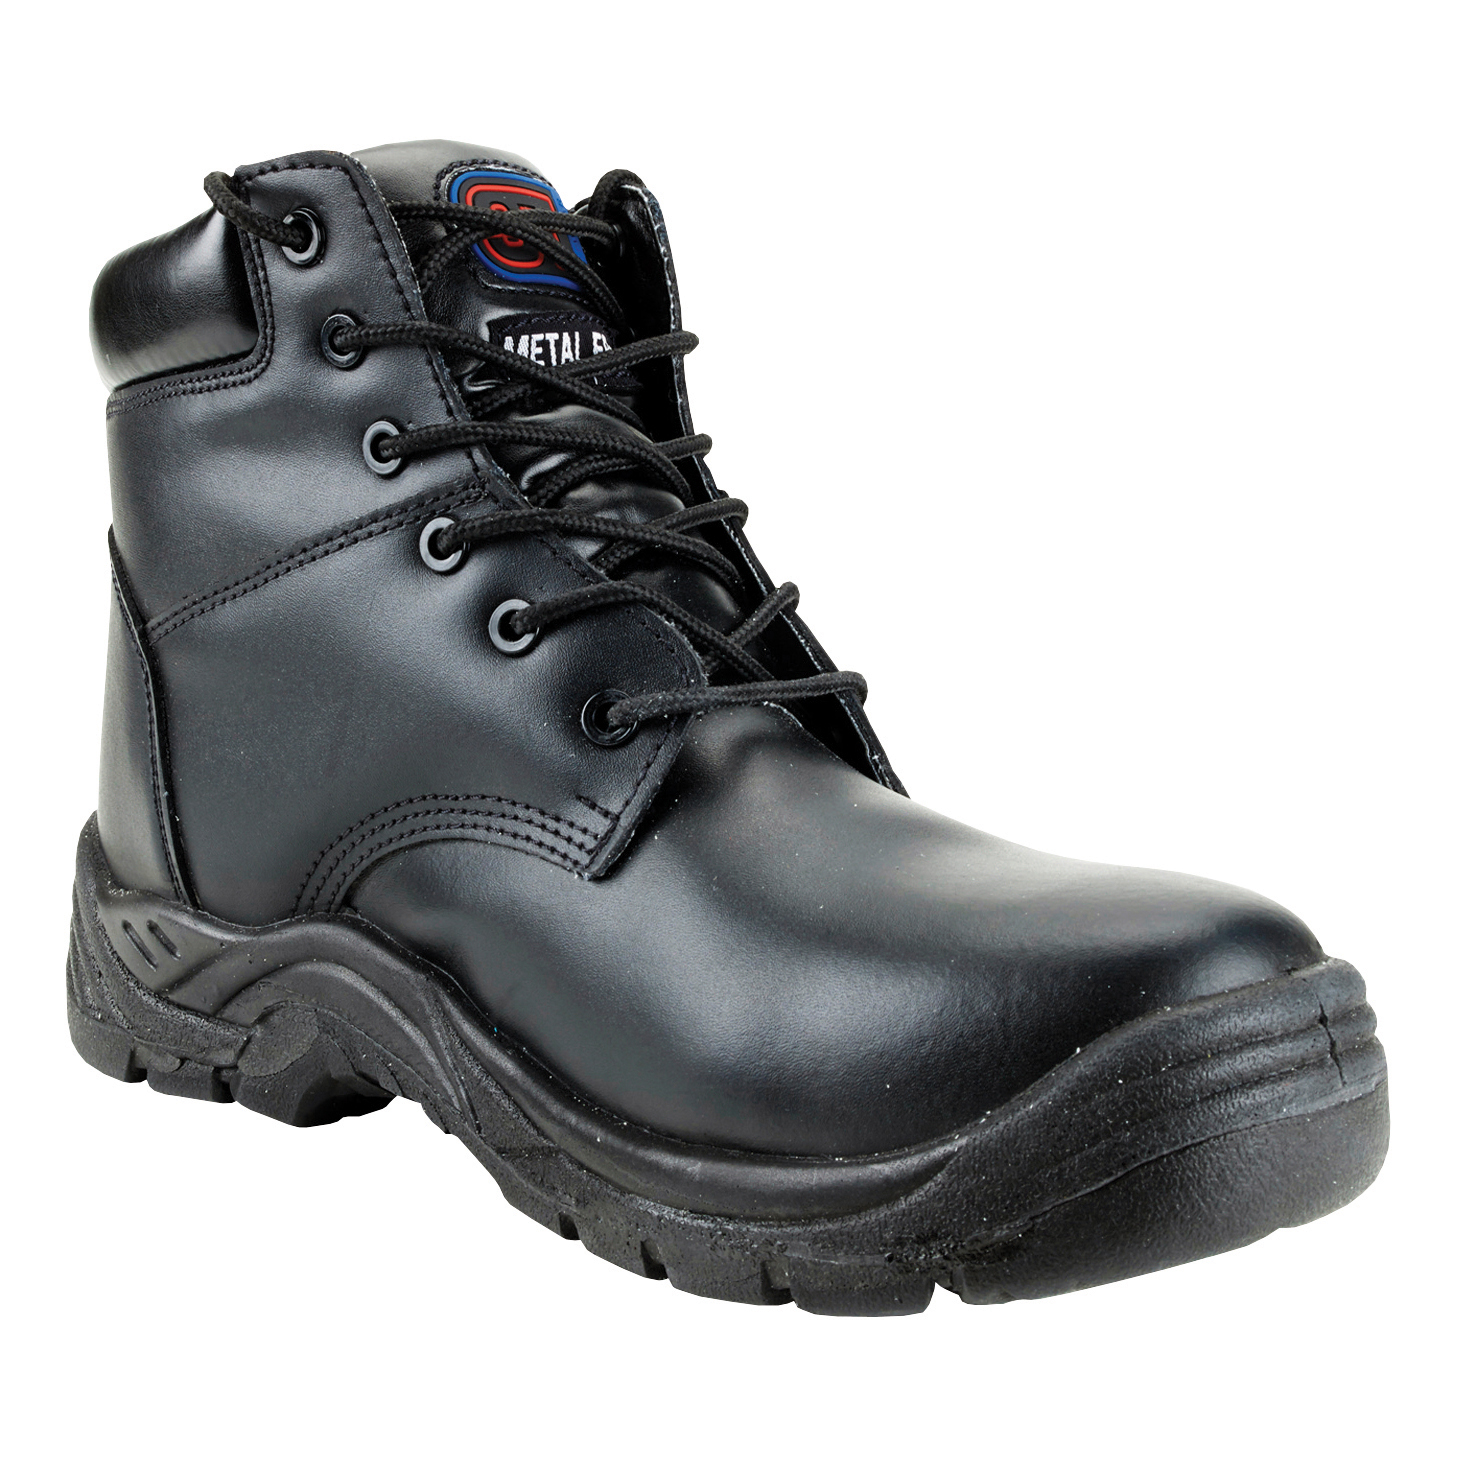 ST Toe Lite Boot Leather Comp' Midsole Safety Toecap Metal Free sze 6 Blk Ref 90171 *Approx 3 Day L/Time*